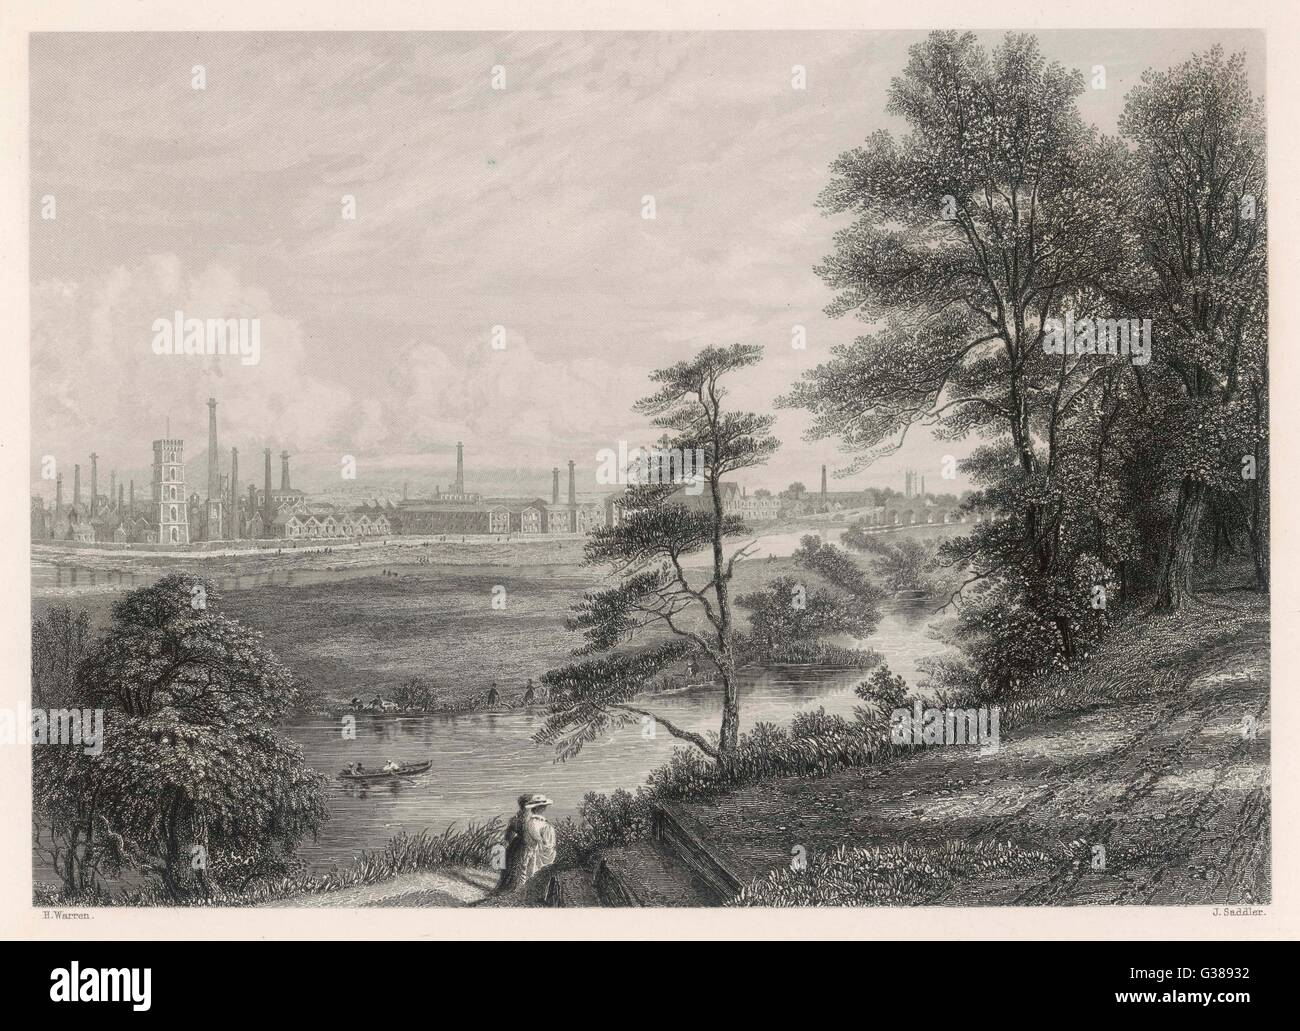 Gesamtansicht der Industrie in Burton-On-Trent.         Datum: ca. 1840 Stockfoto